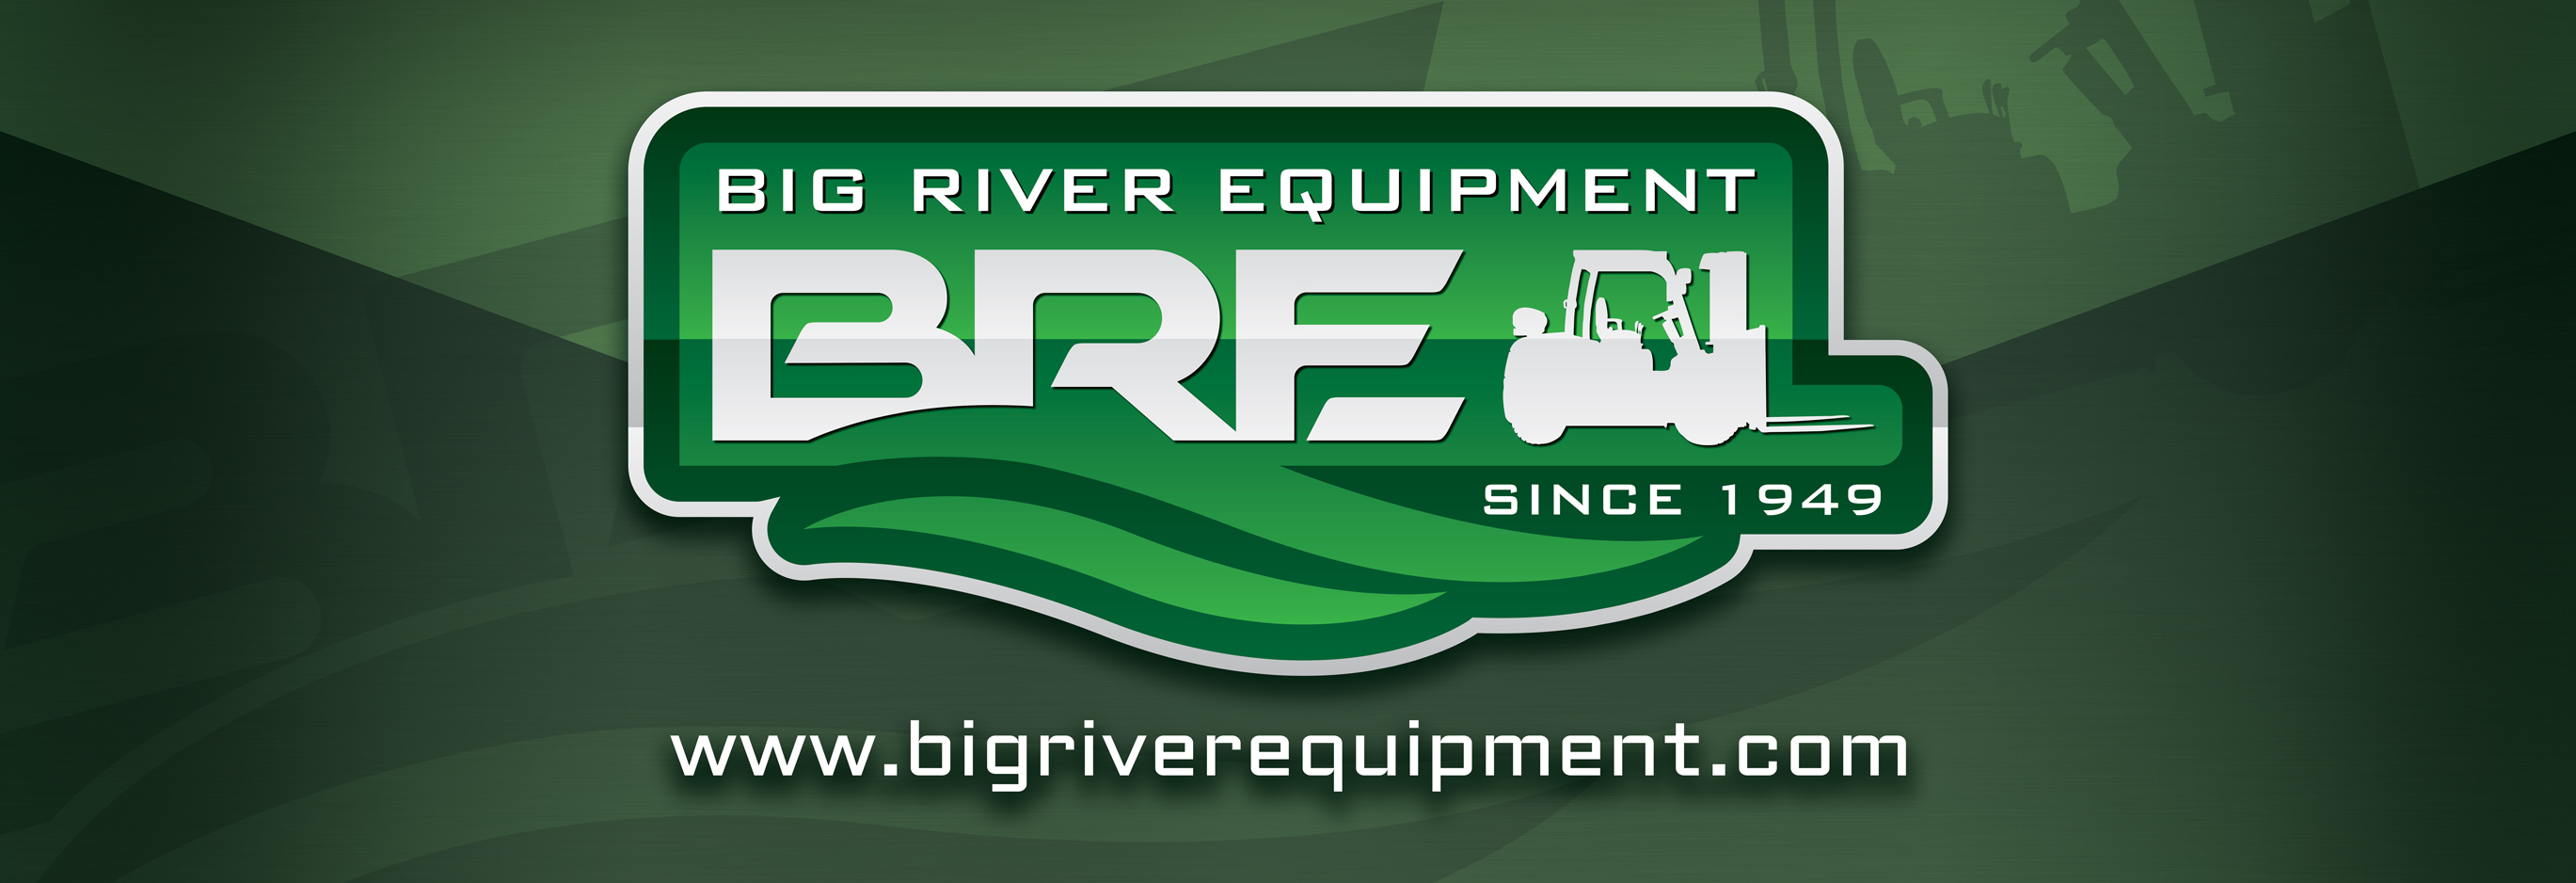 Big River Equipment Co.